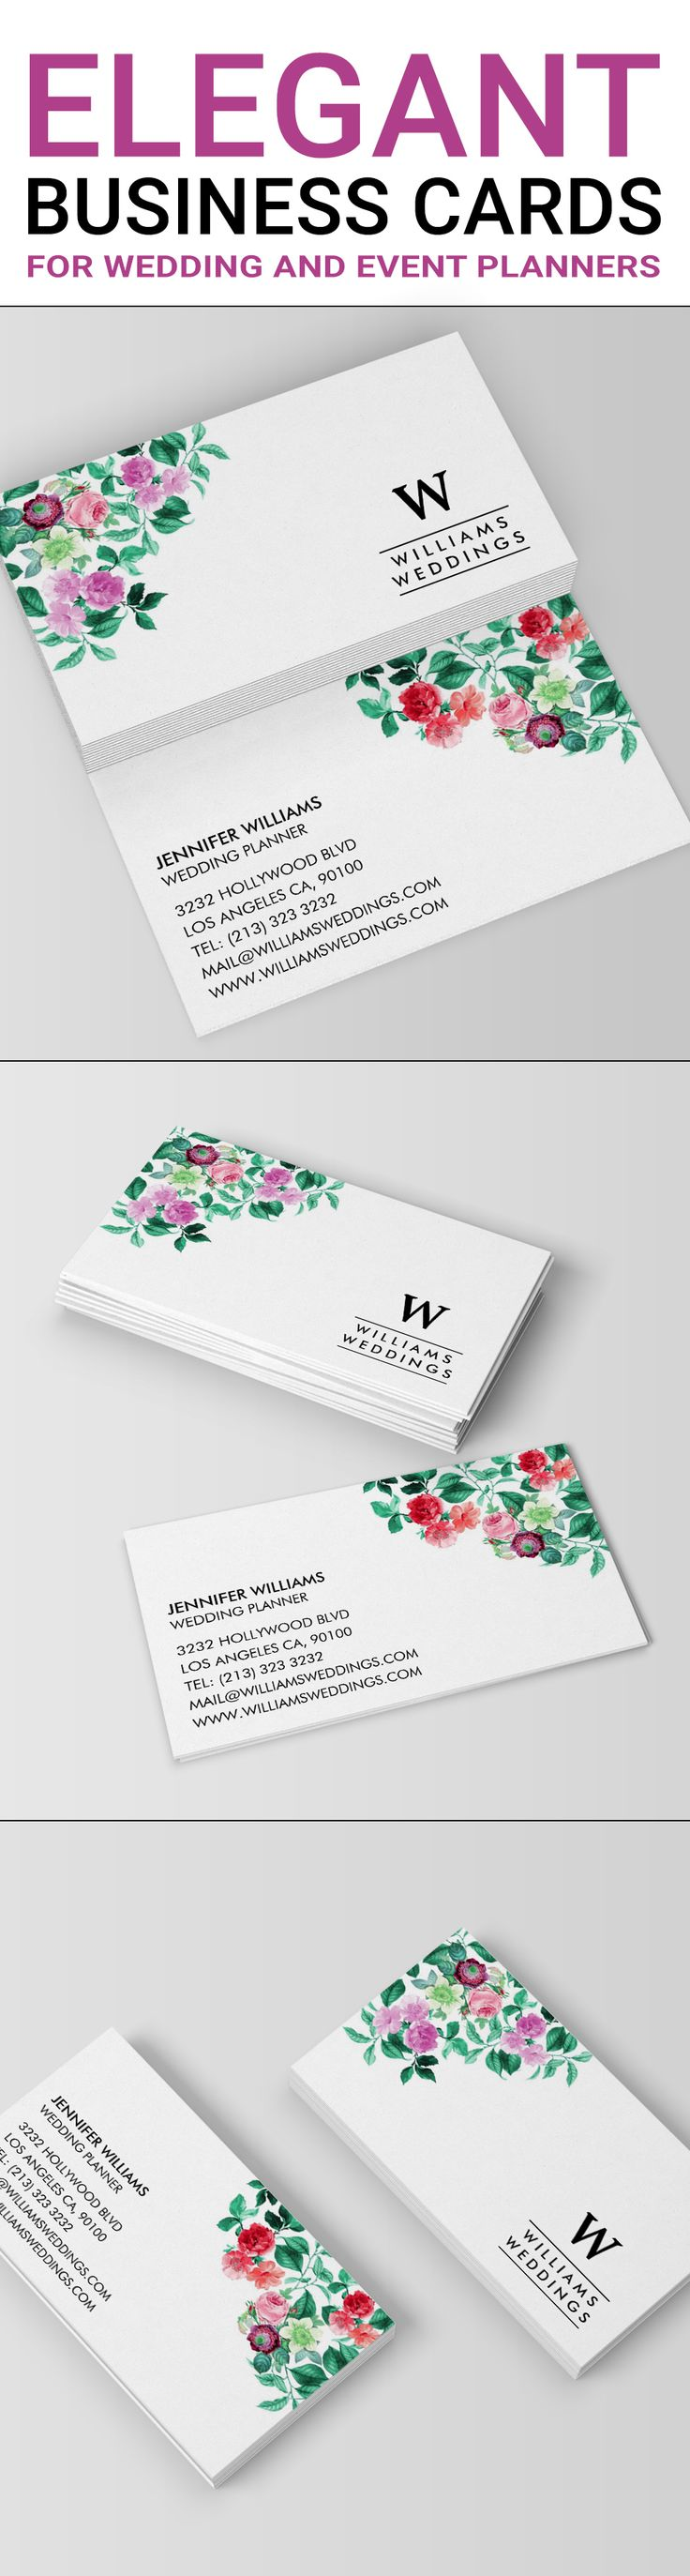 Best 25 Classic business card ideas on Pinterest